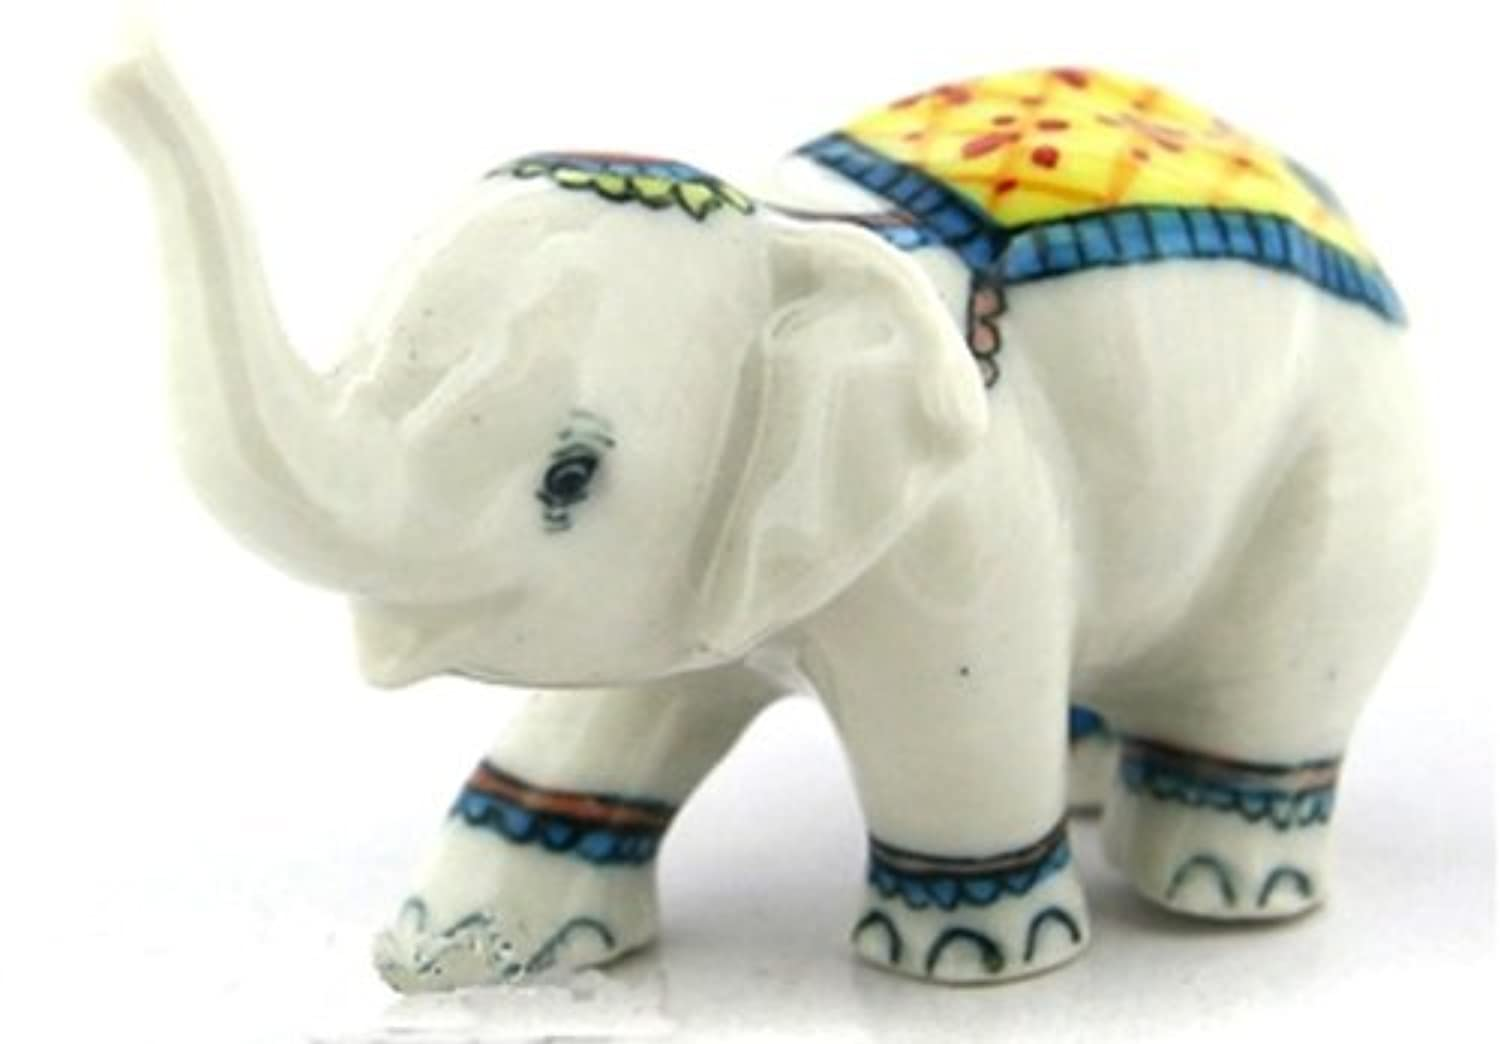 3 D Ceramic Toy Elephant Play Ball No.3 Dollhouse Miniatures Free Ship by ChangThai Design [並行輸入品]